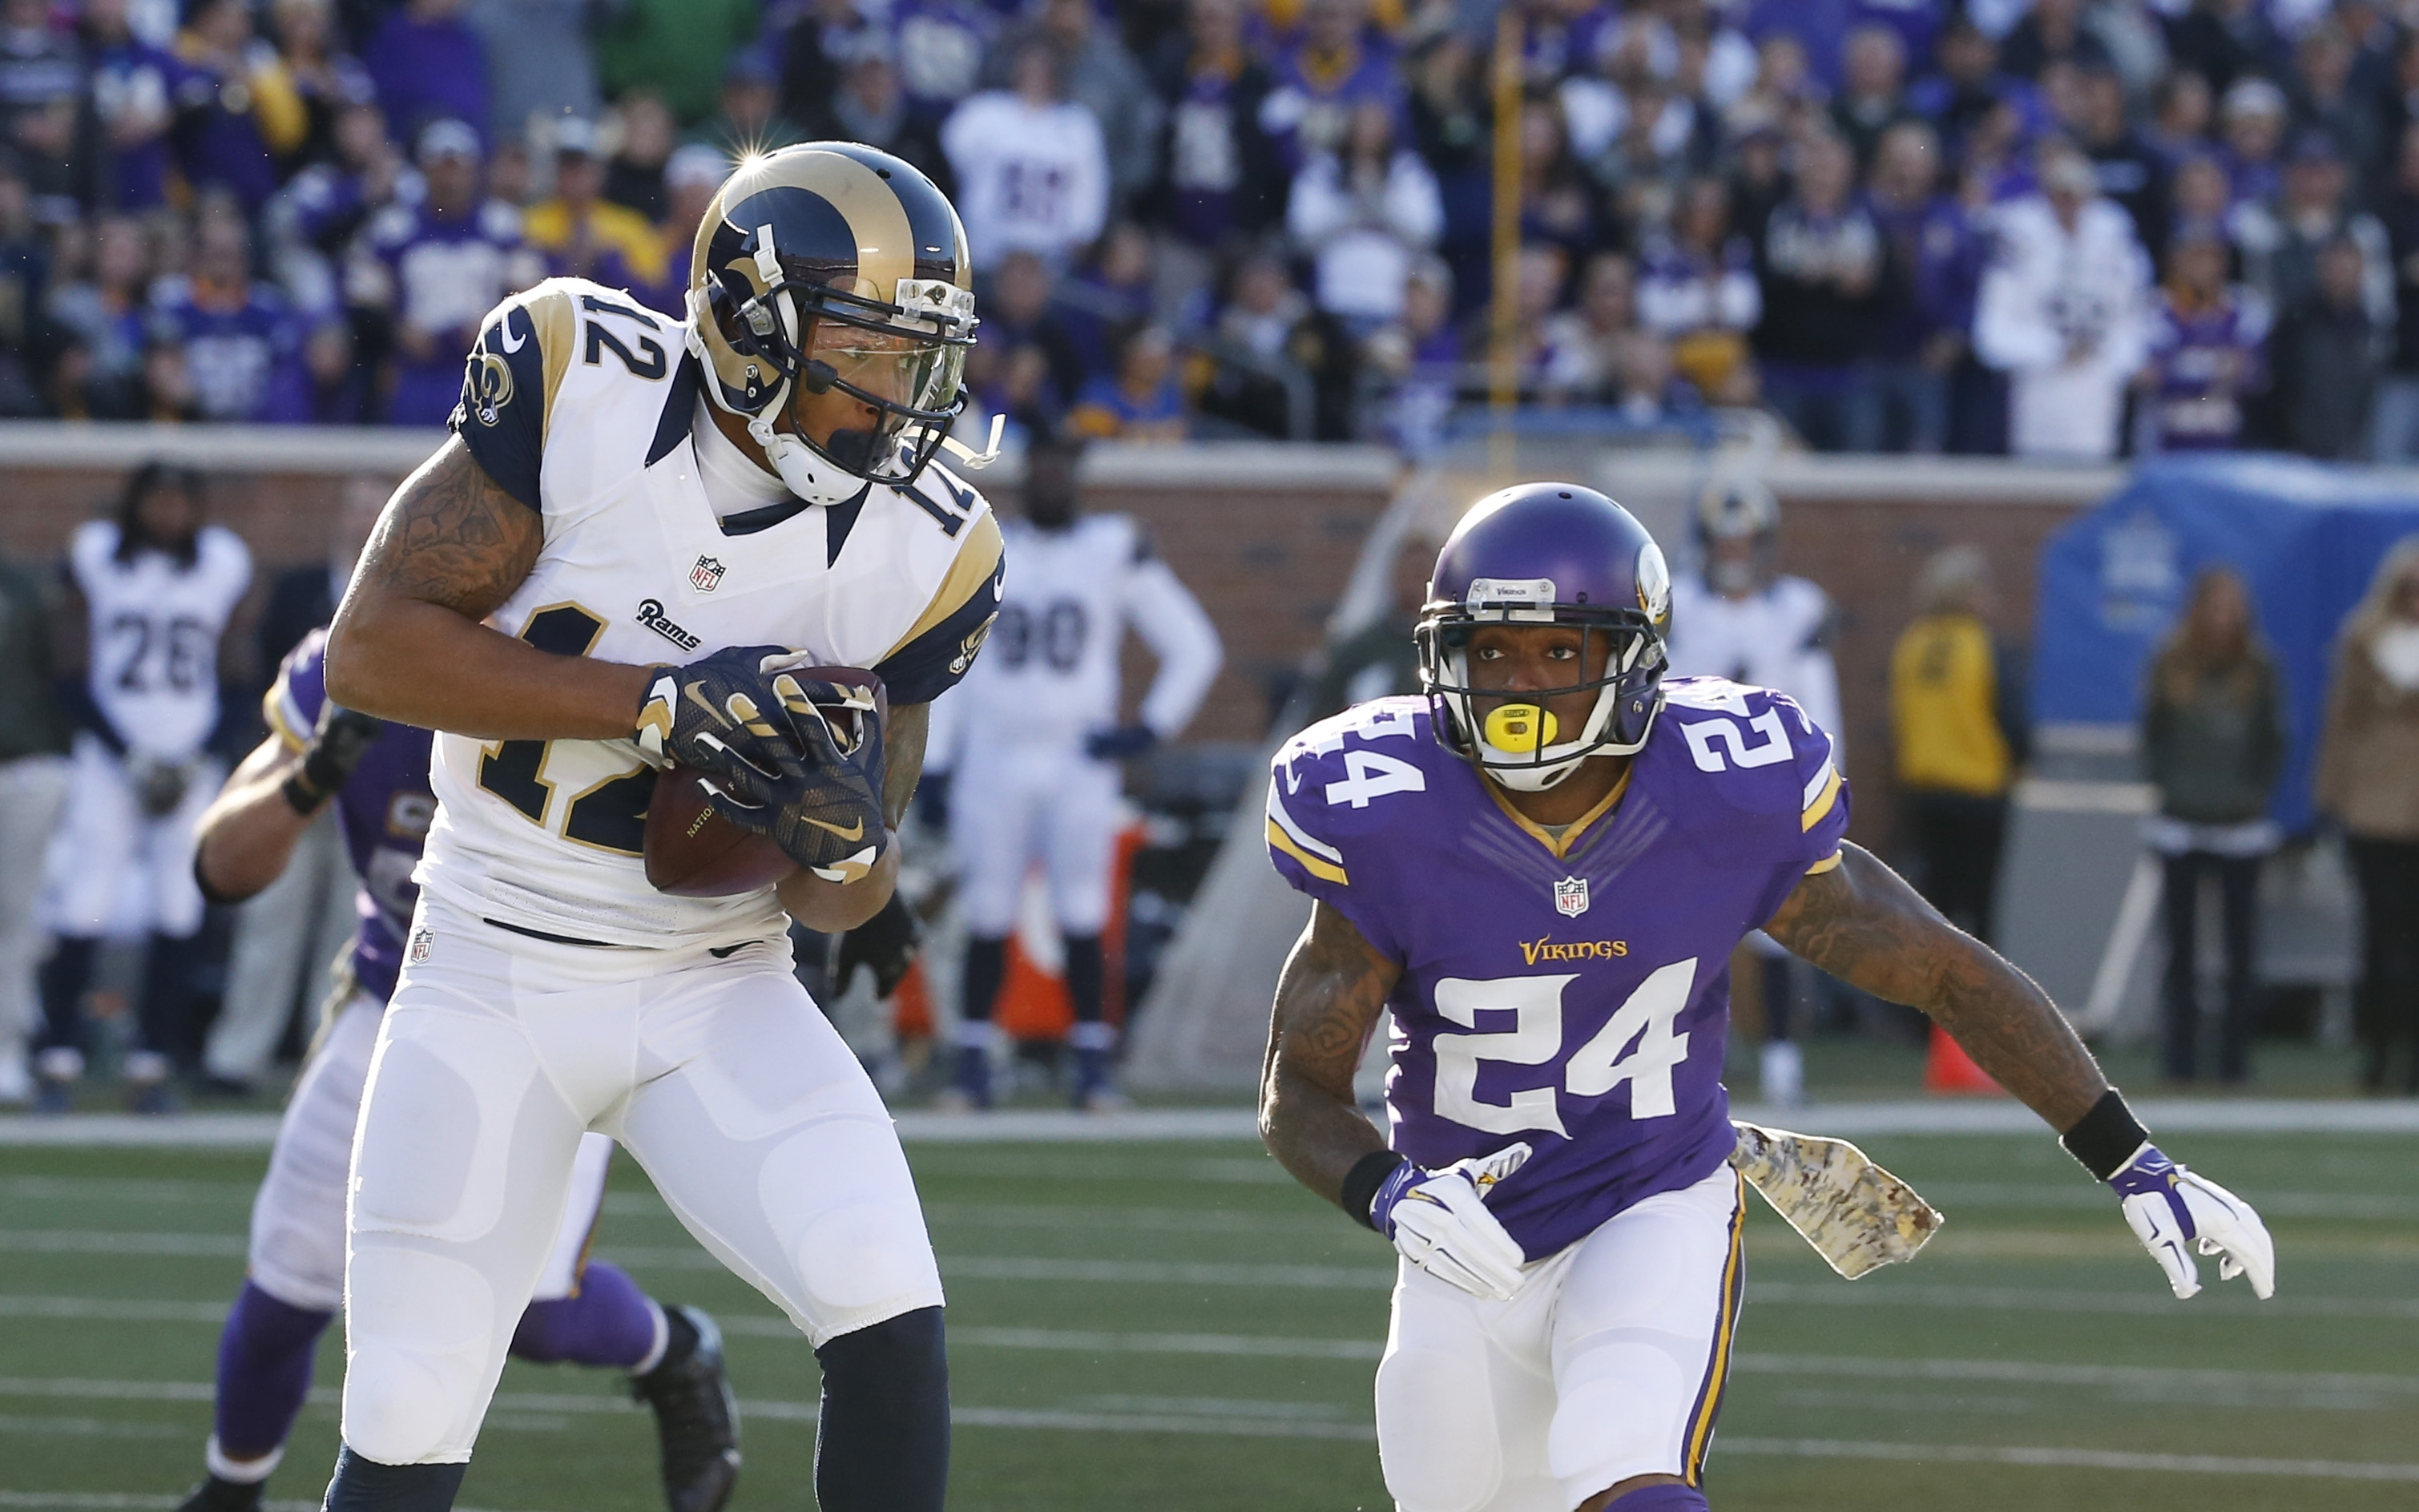 Minnesota Vikings cornerback Captain Munnerlyn (24) closes in on St. Louis Rams wide receiver Stedman Bailey (12) during the second half of an NFL football game, Sunday, Nov. 8, 2015, in Minneapolis. (AP Photo/Ann Heisenfelt)